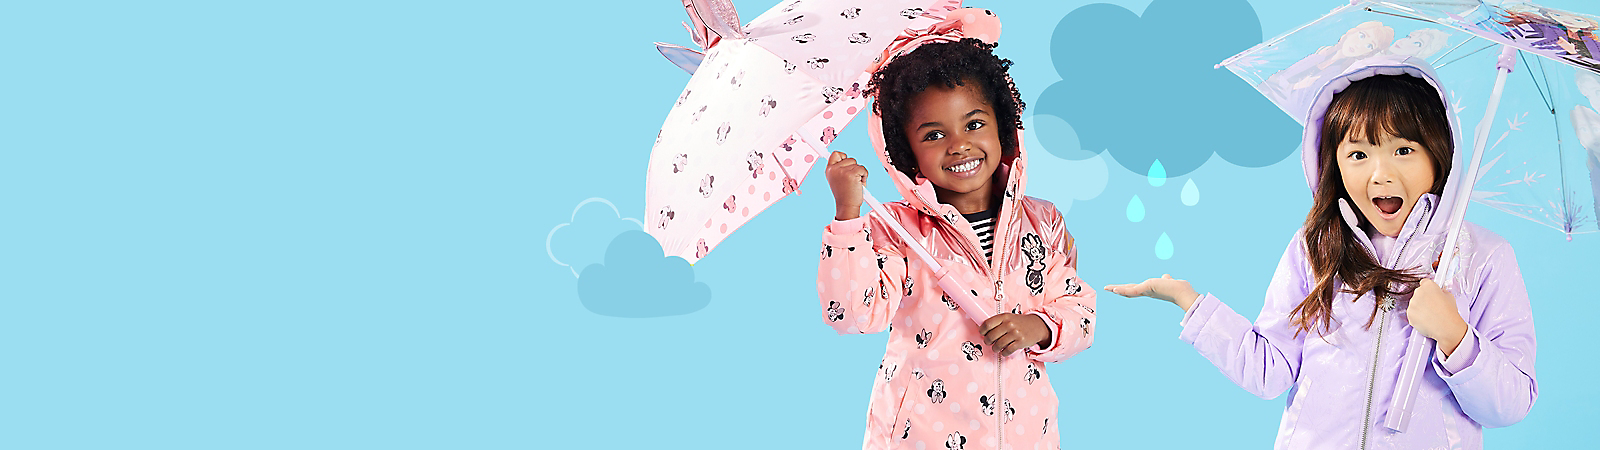 Background image of Girls' Rainwear